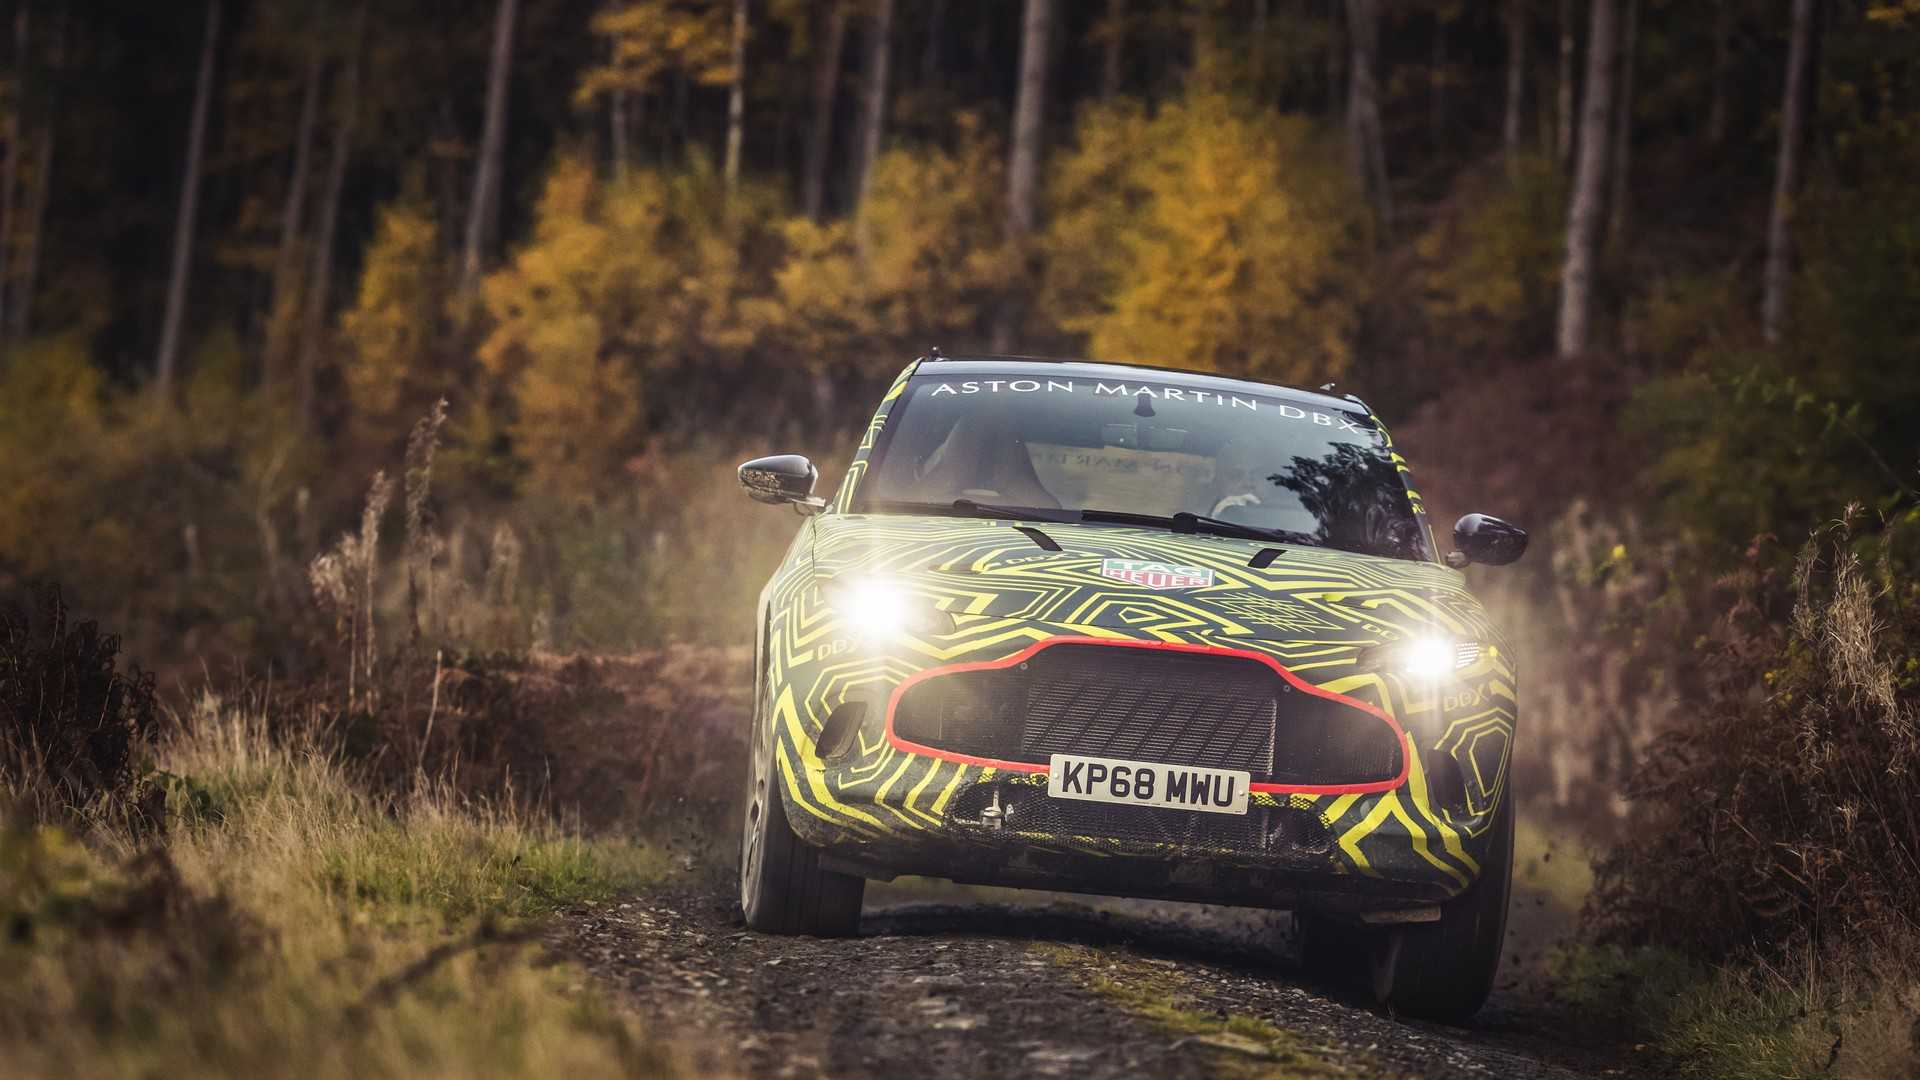 This is Aston Martin's new SUV - the DBX